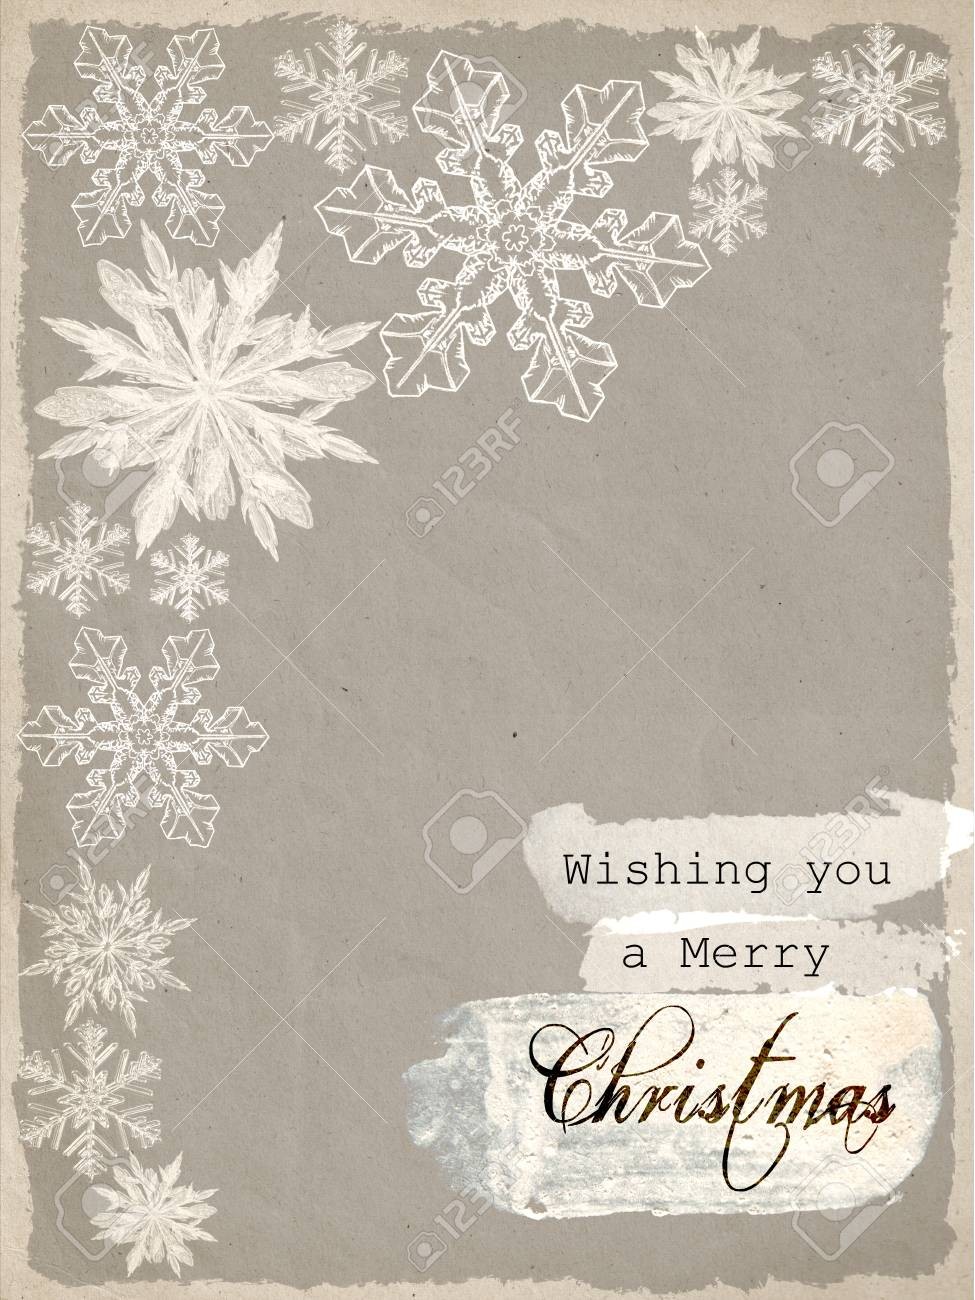 Christmas Card With The Words Wishing You A Merry Christmas In ...